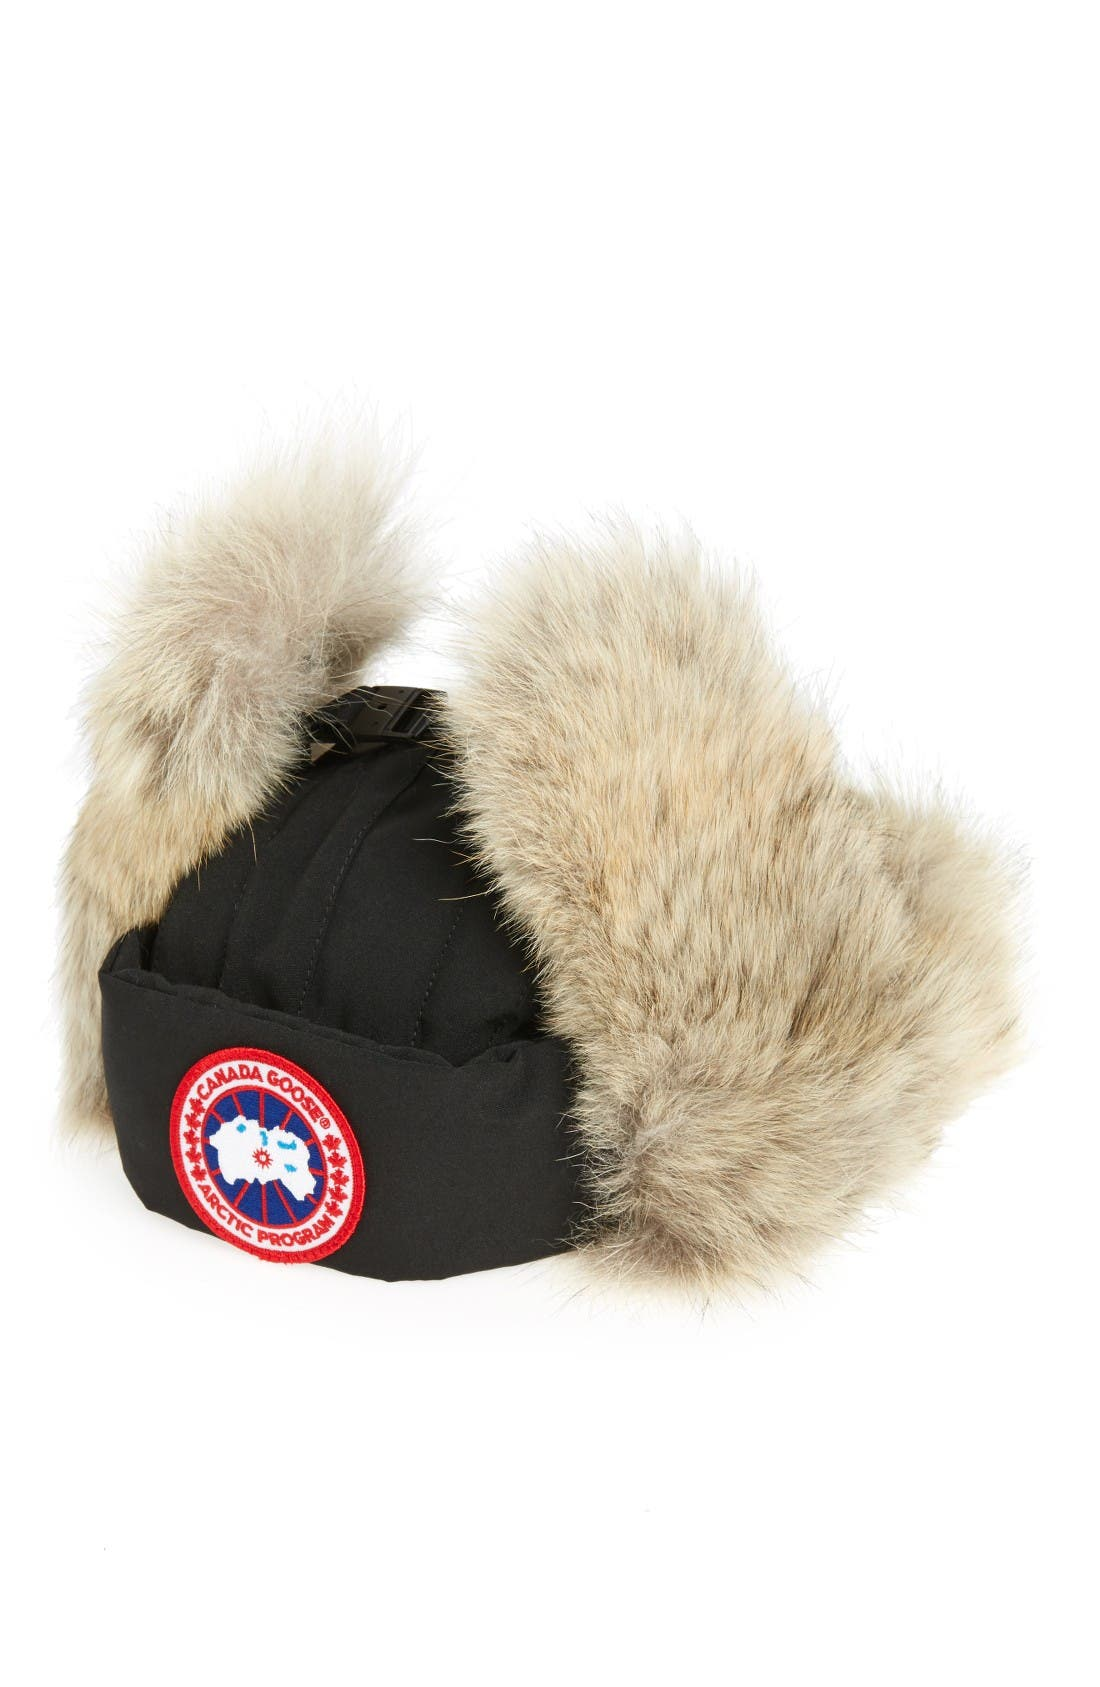 Main Image - Canada Goose Down Fill Aviator Hat with Genuine Coyote Fur Trim